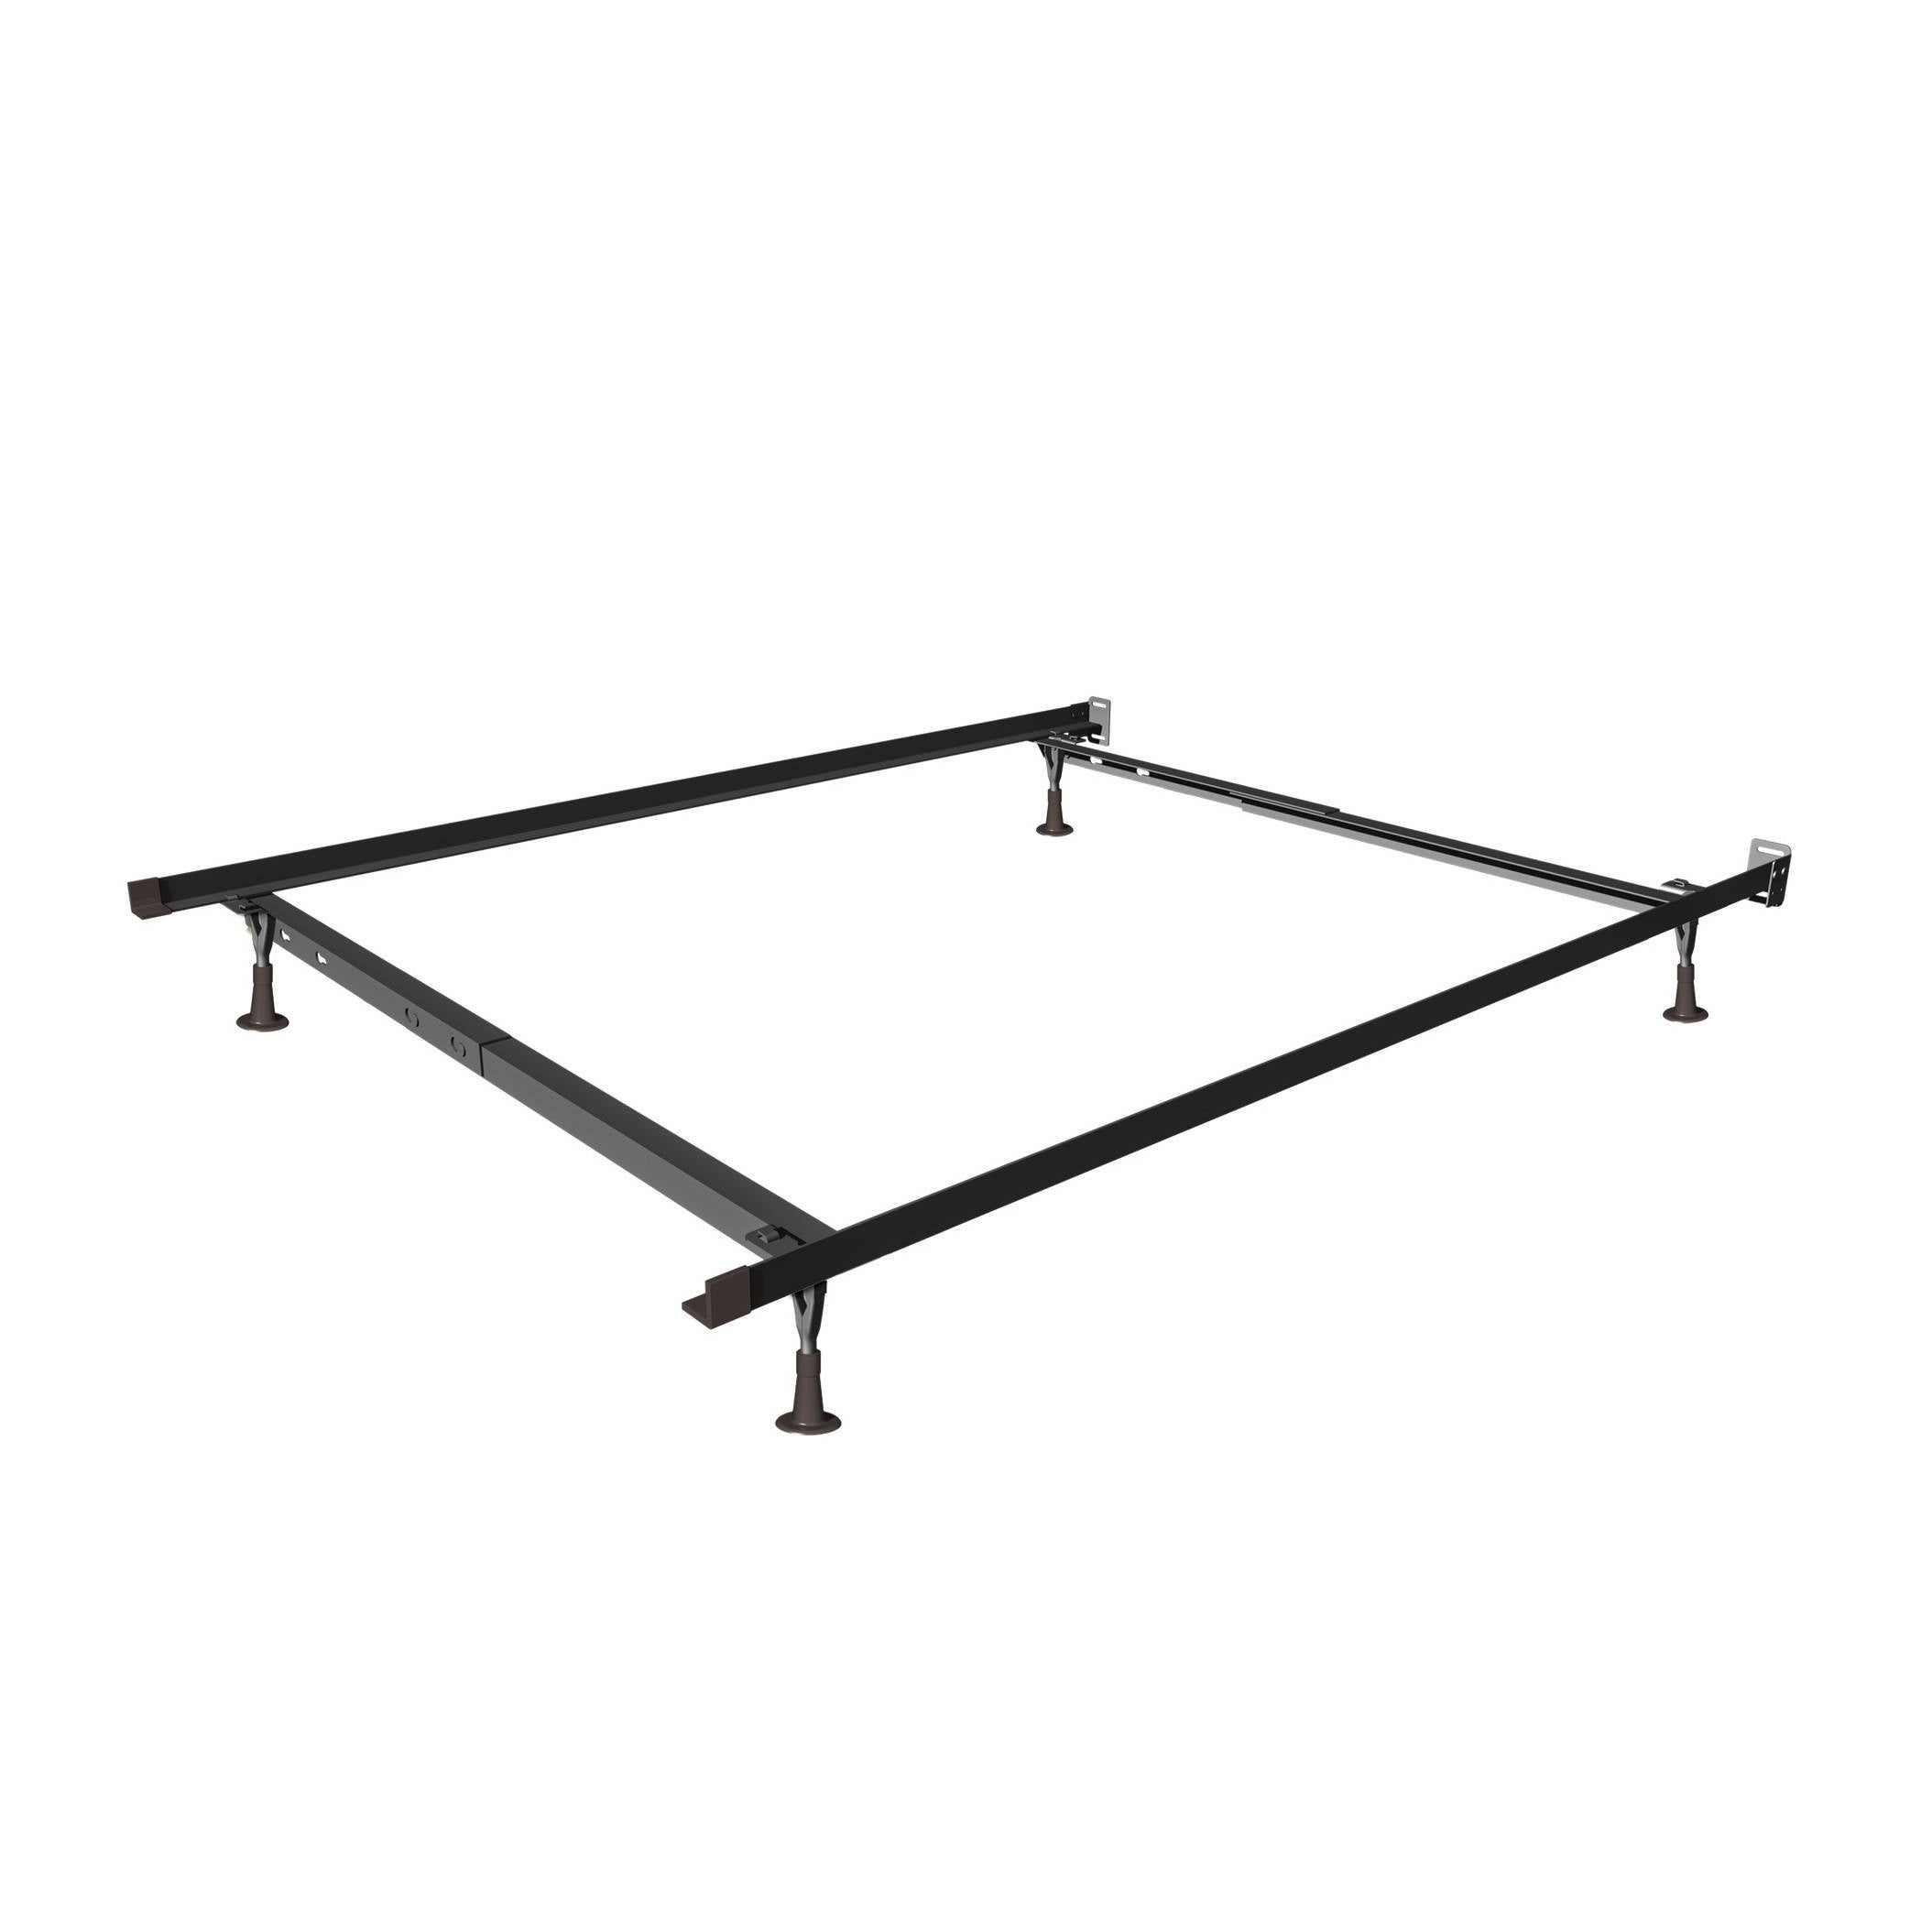 Shop Rize Adjustable Bed Frame Twin Full Or Queen With Glides